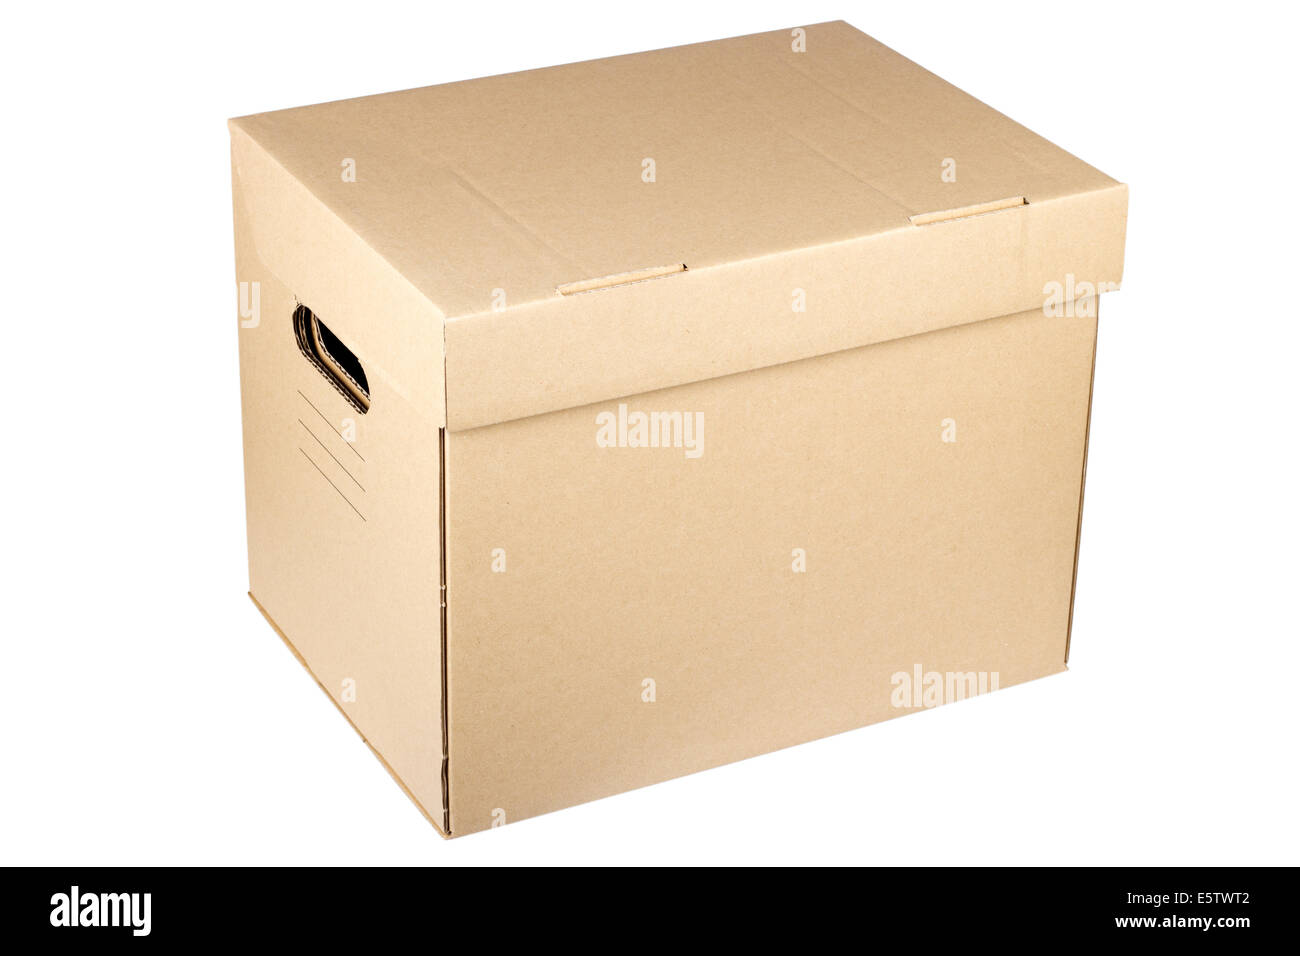 Closed cardboard box isolated on a white background. - Stock Image